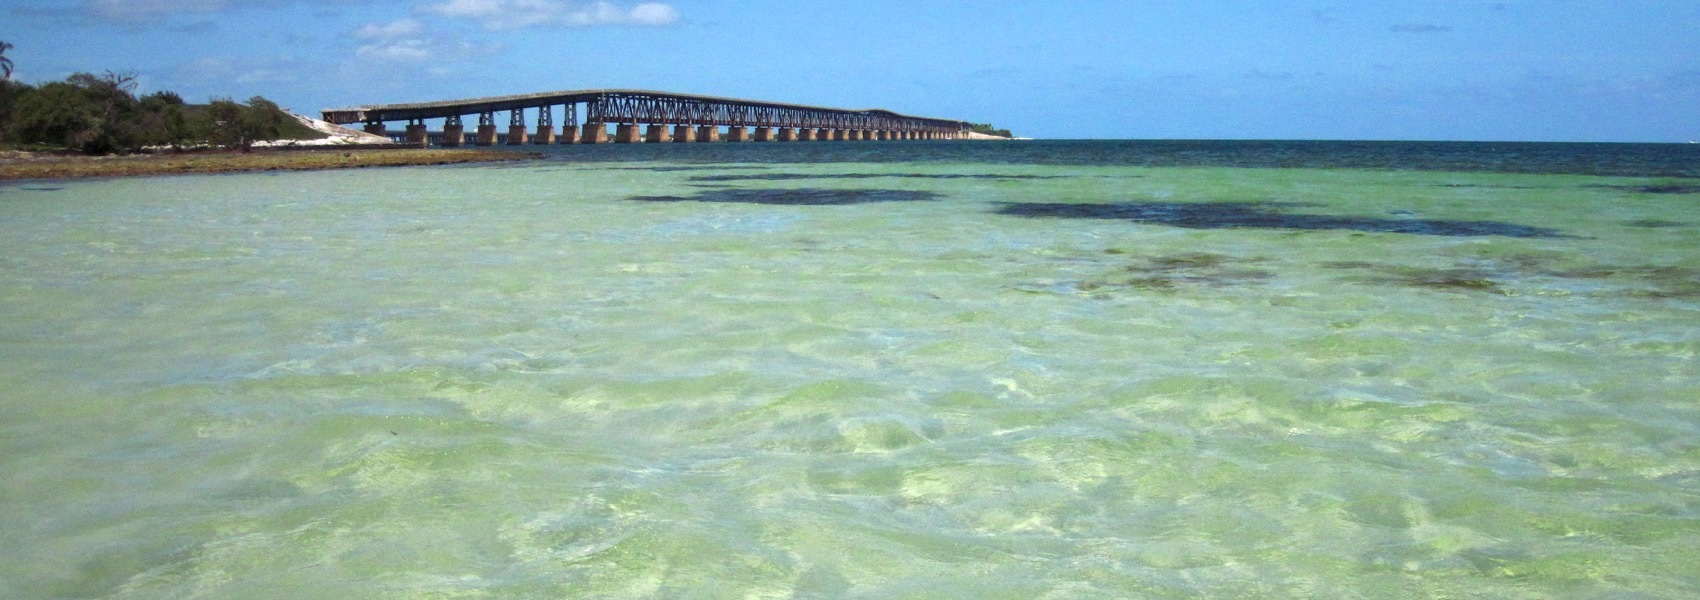 The Old Bahia Honda Bridge, Scout Key